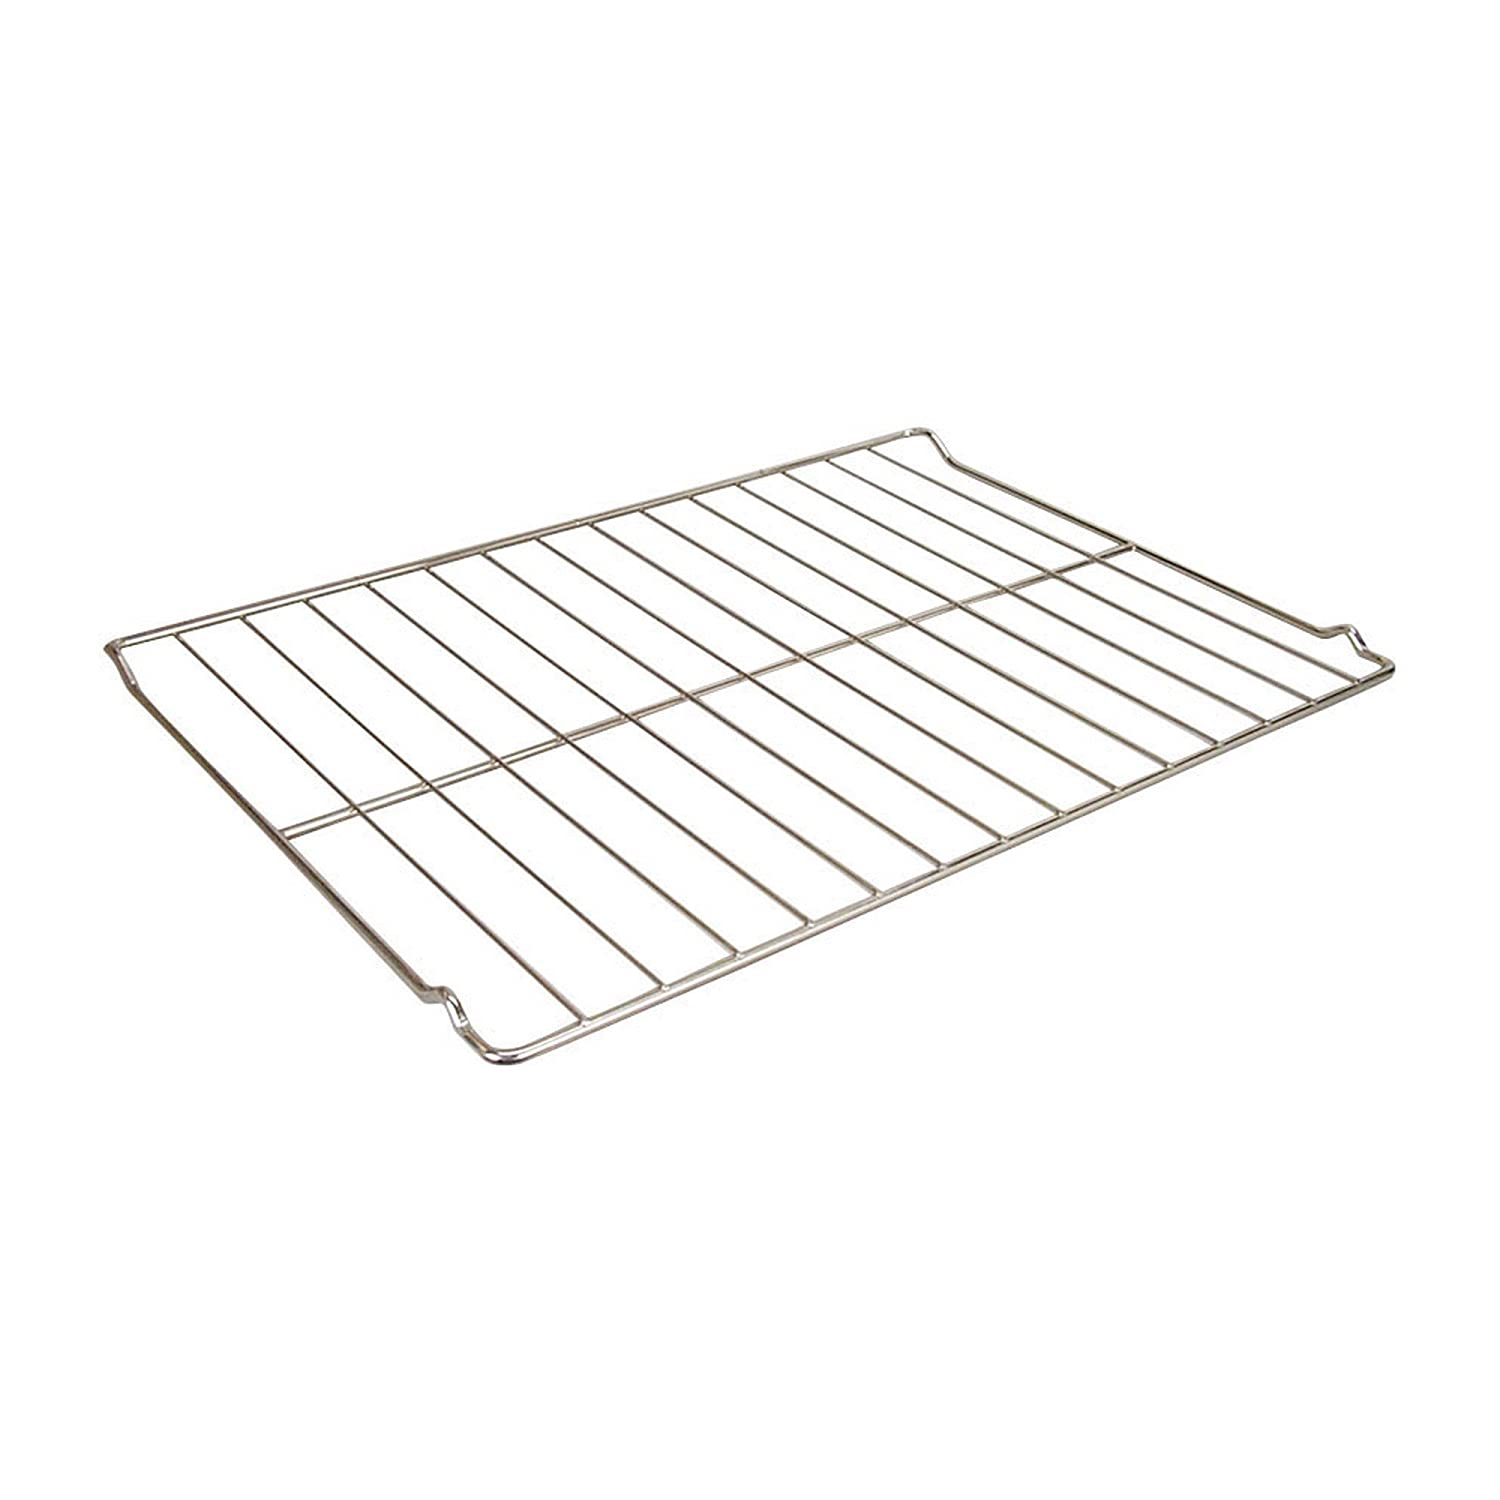 "Exact Replacement Parts ERWB48X5099 Oven Rack, 22-7/8"" x 16"", Plastic, 1"" x 1"" x 1"""